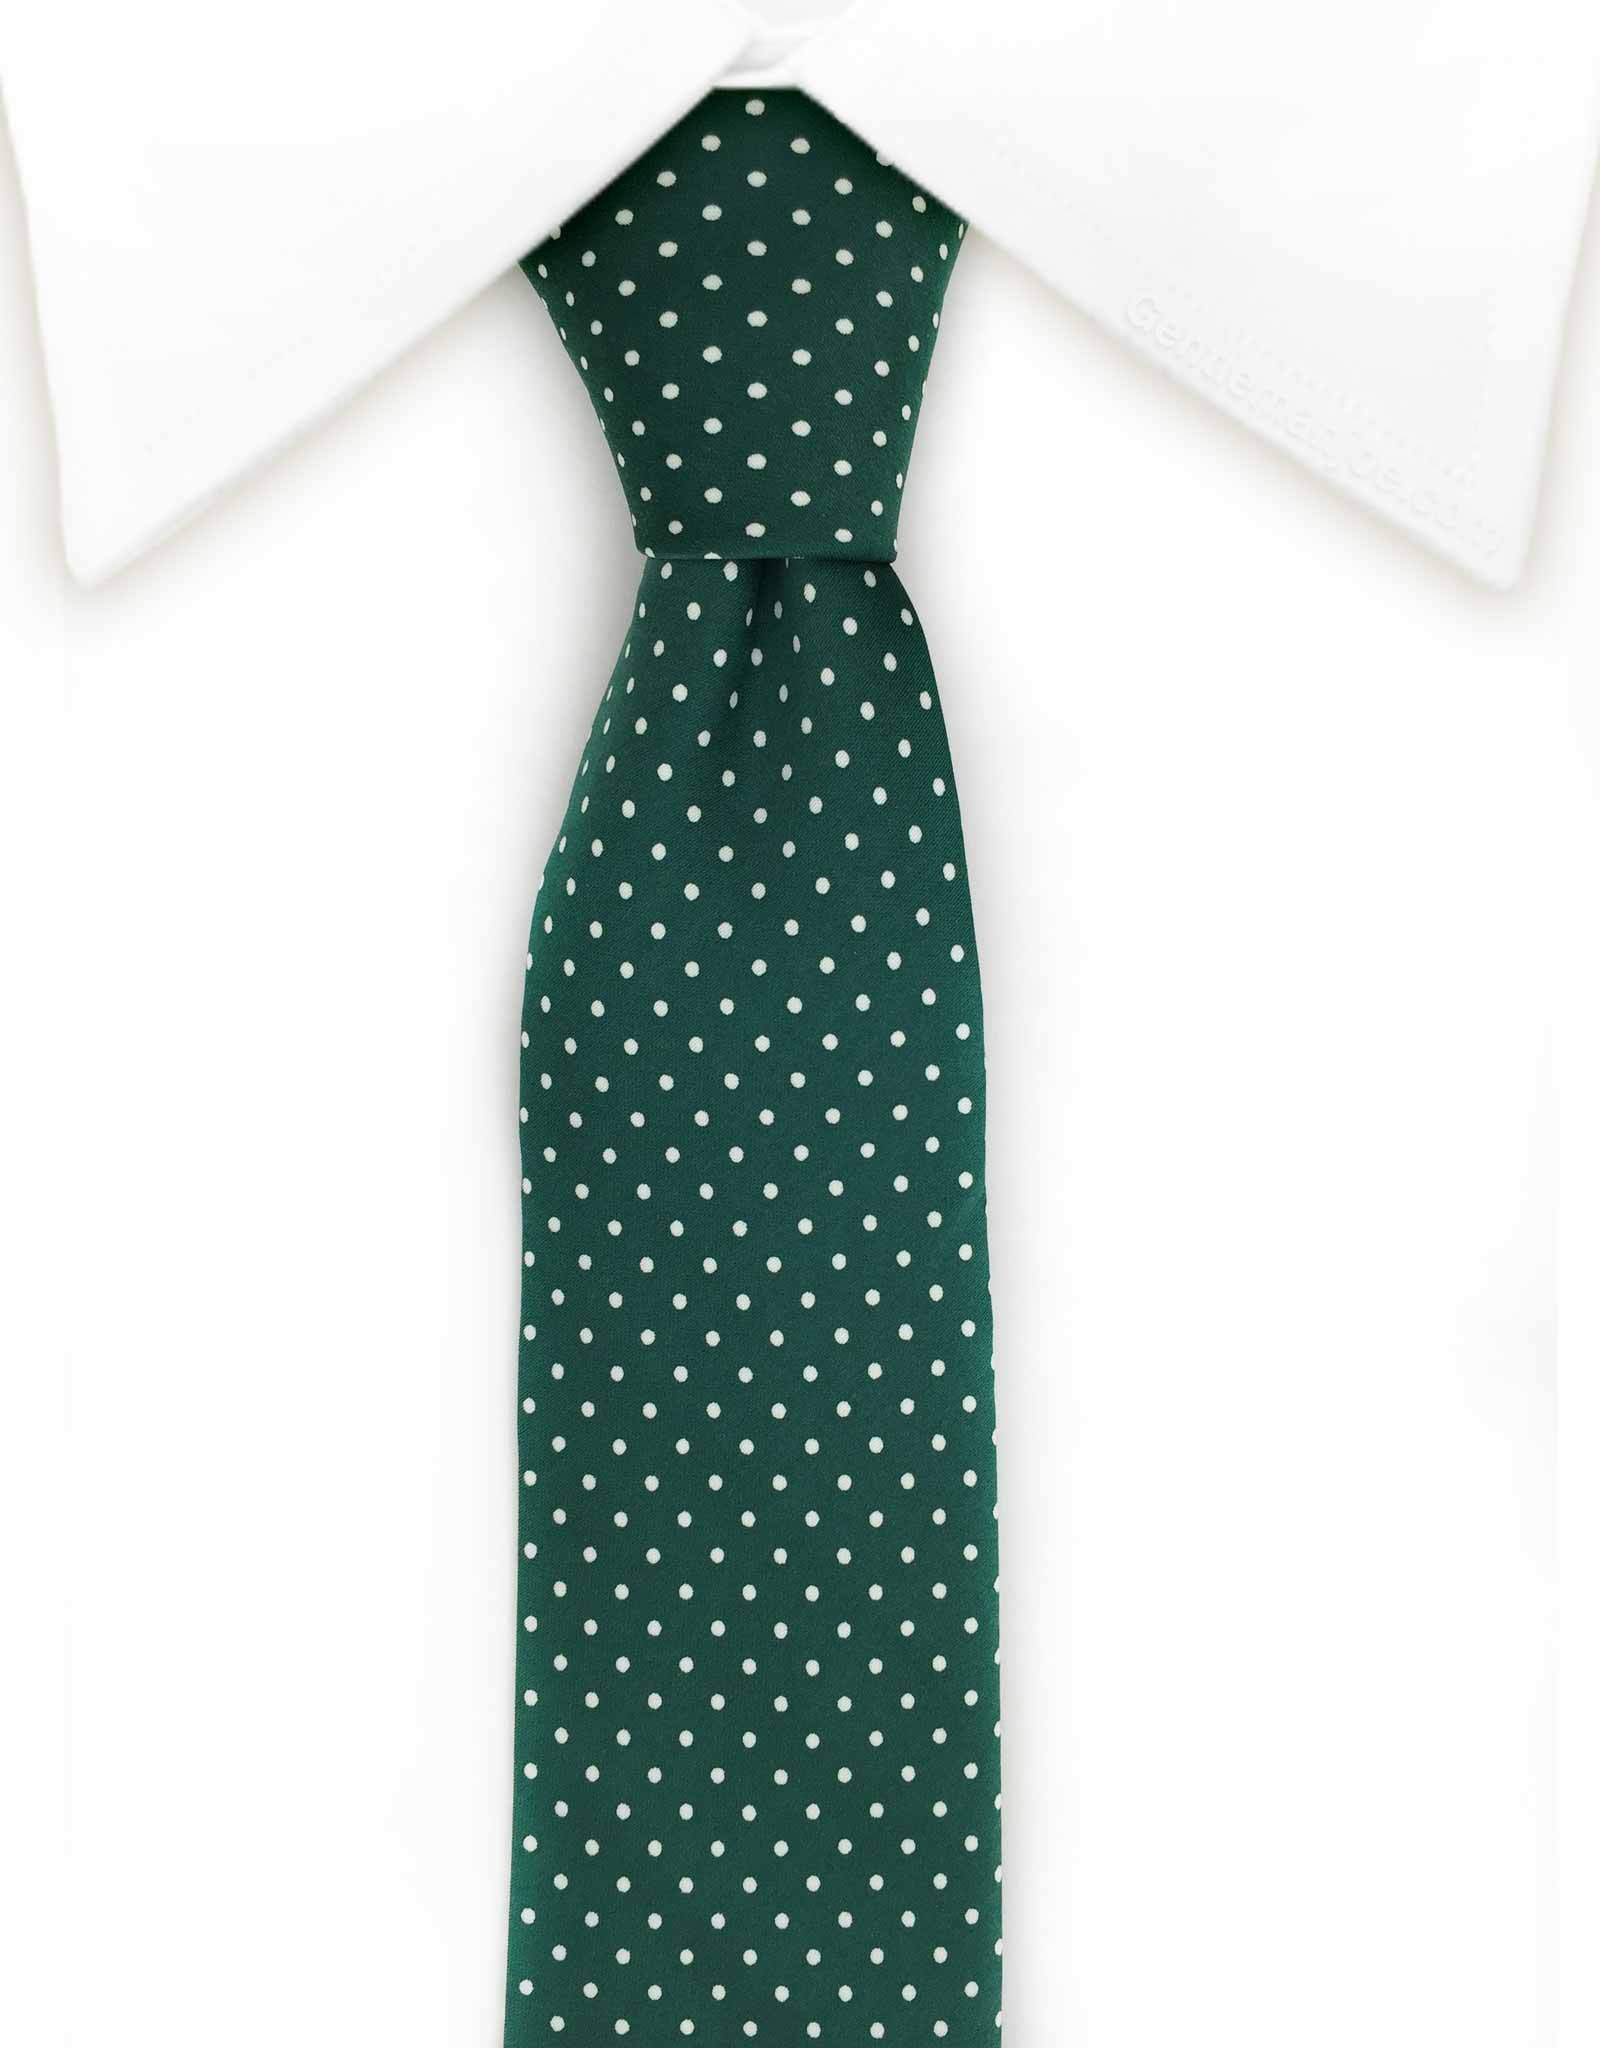 green skinny necktie with white micro dots